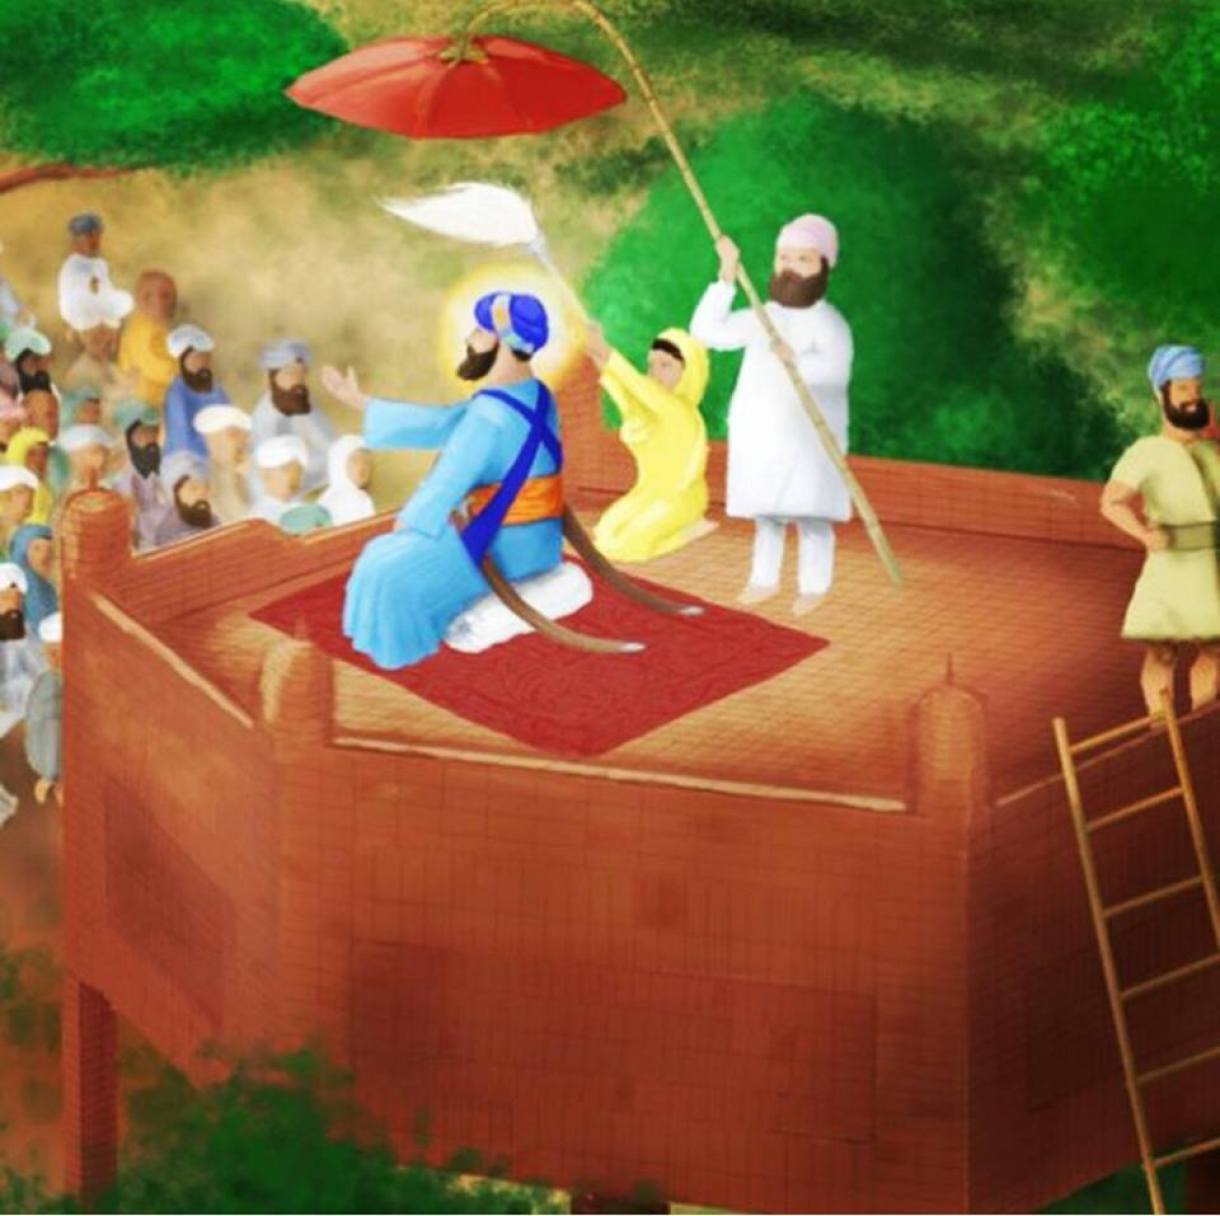 Originally the Akal Takhat was a 3.5 meter